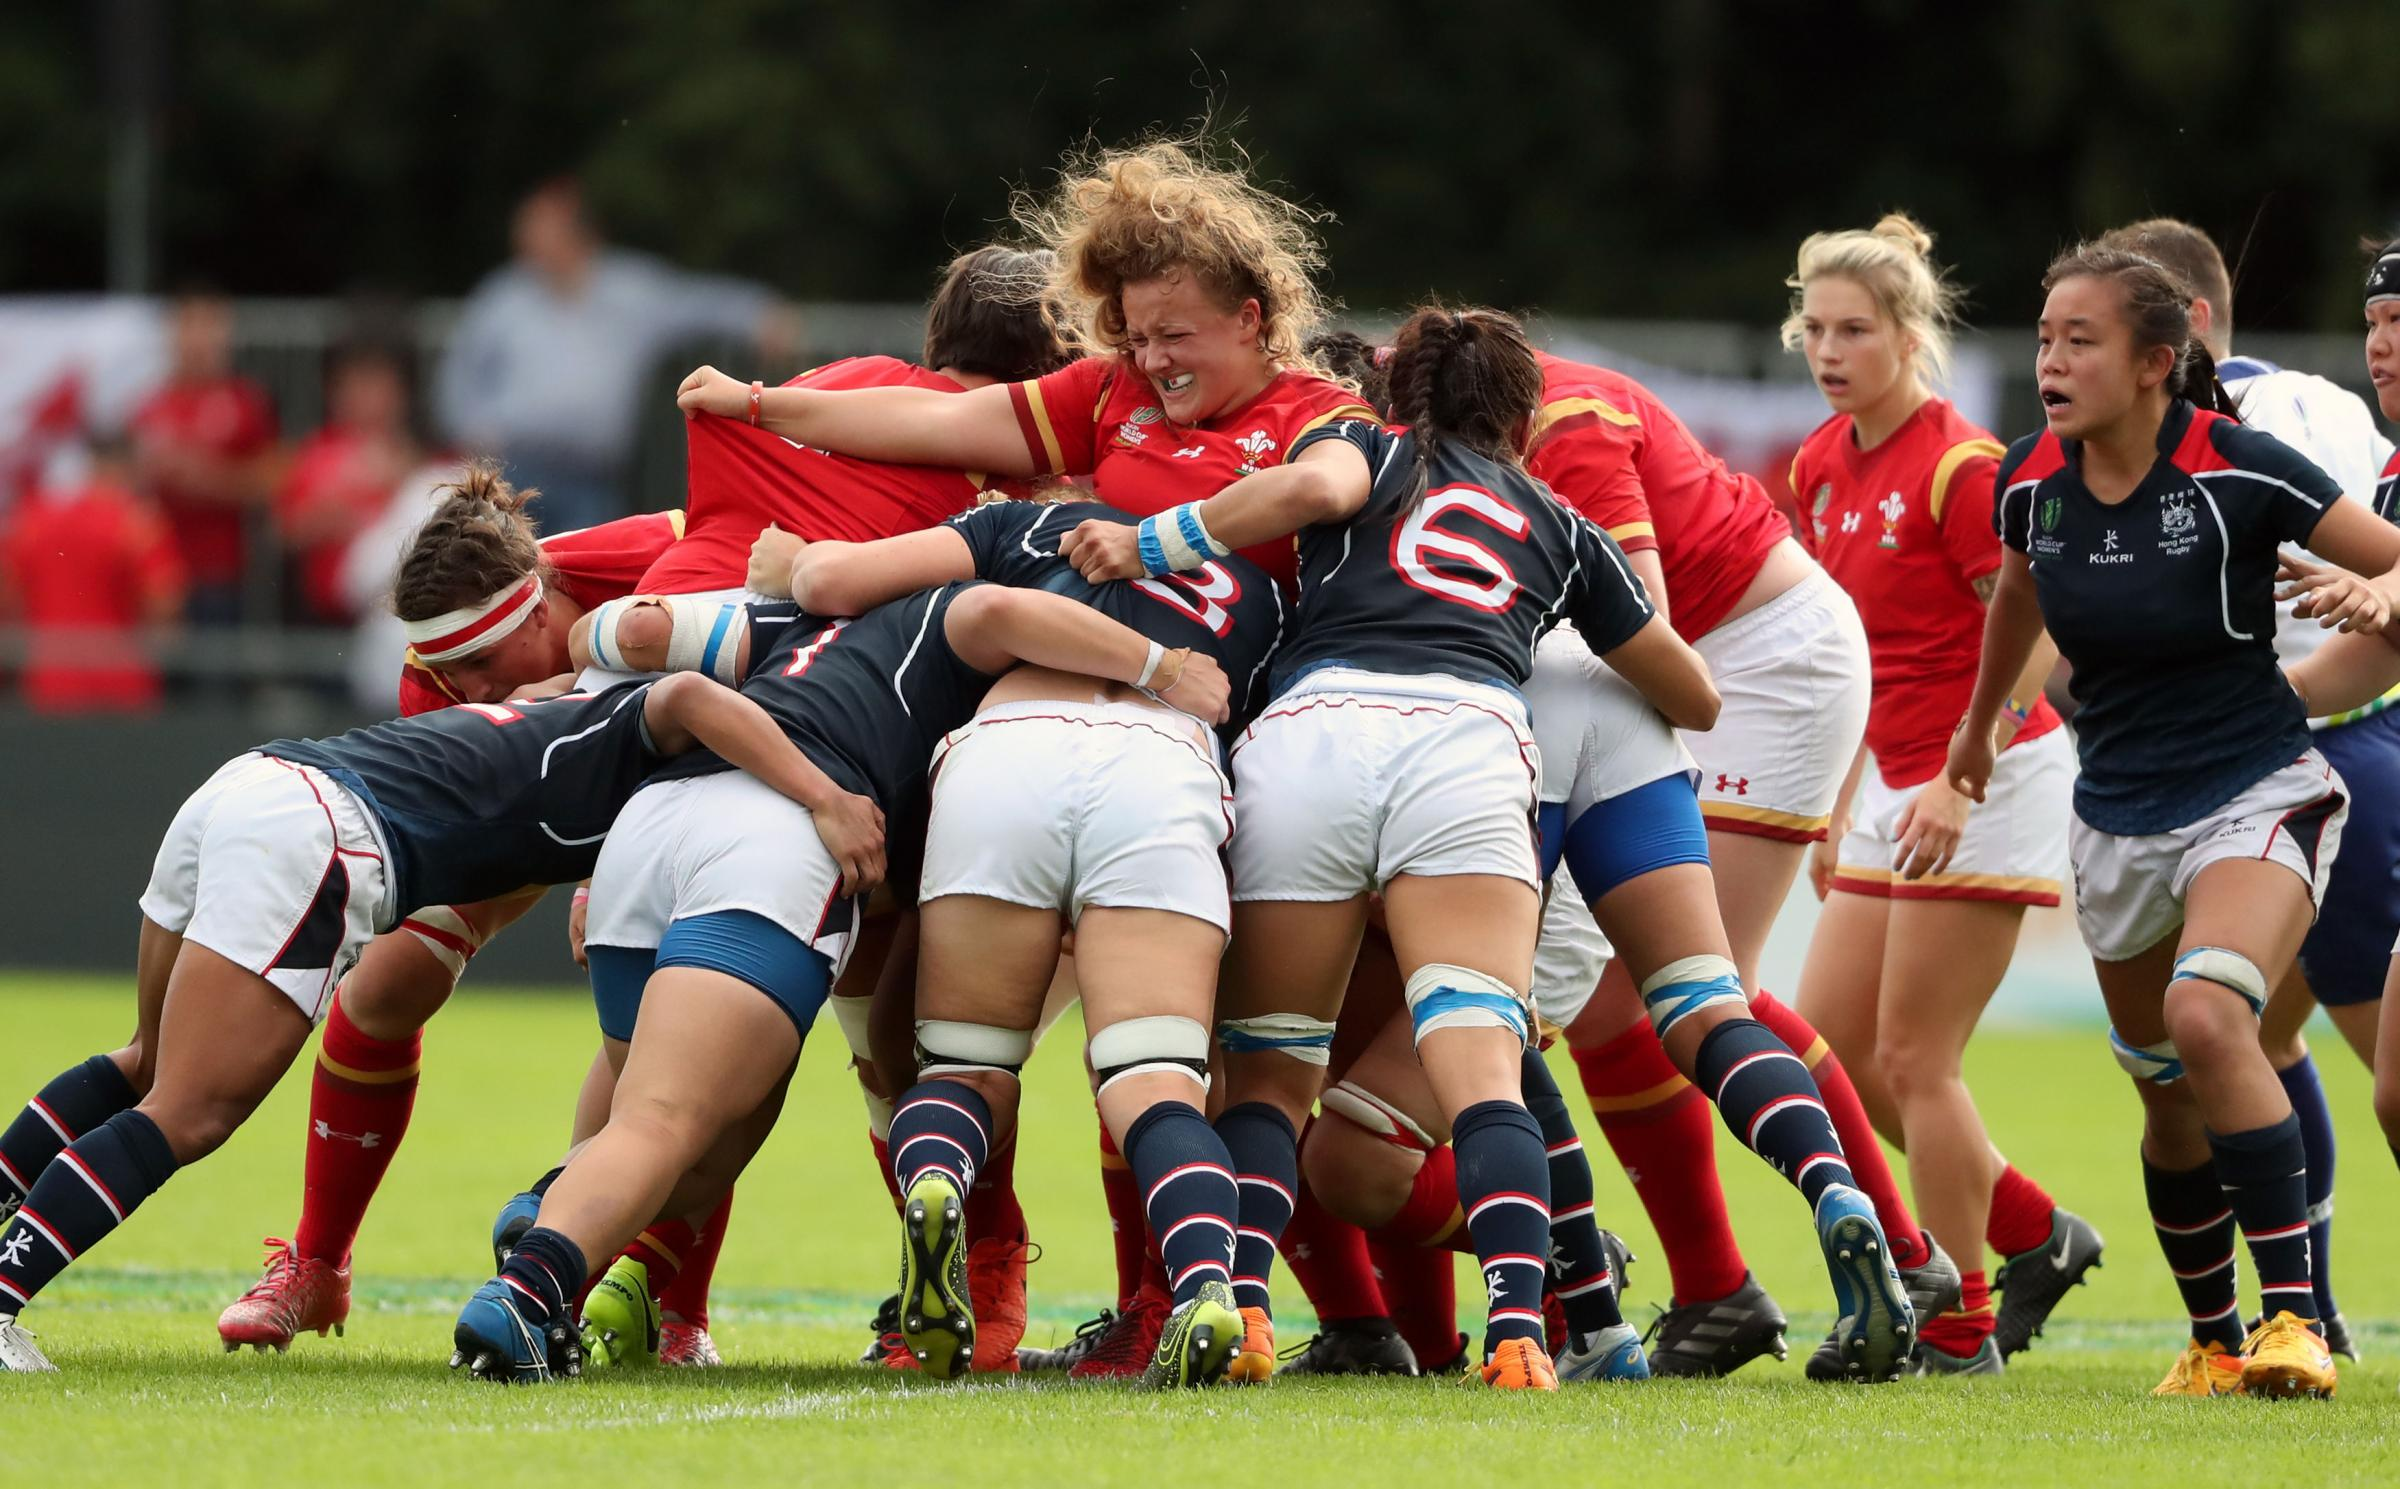 Wales' Lleucu Geogre (centre) during the 2017 Women's Rugby World Cup, Pool A match at UCD Bowl, Dublin. PRESS ASSOCIATION Photo. Picture date: Thursday August 17, 2017. See PA story RUGBYU Wales Women. Photo credit should read: Niall Carson/PA Wi